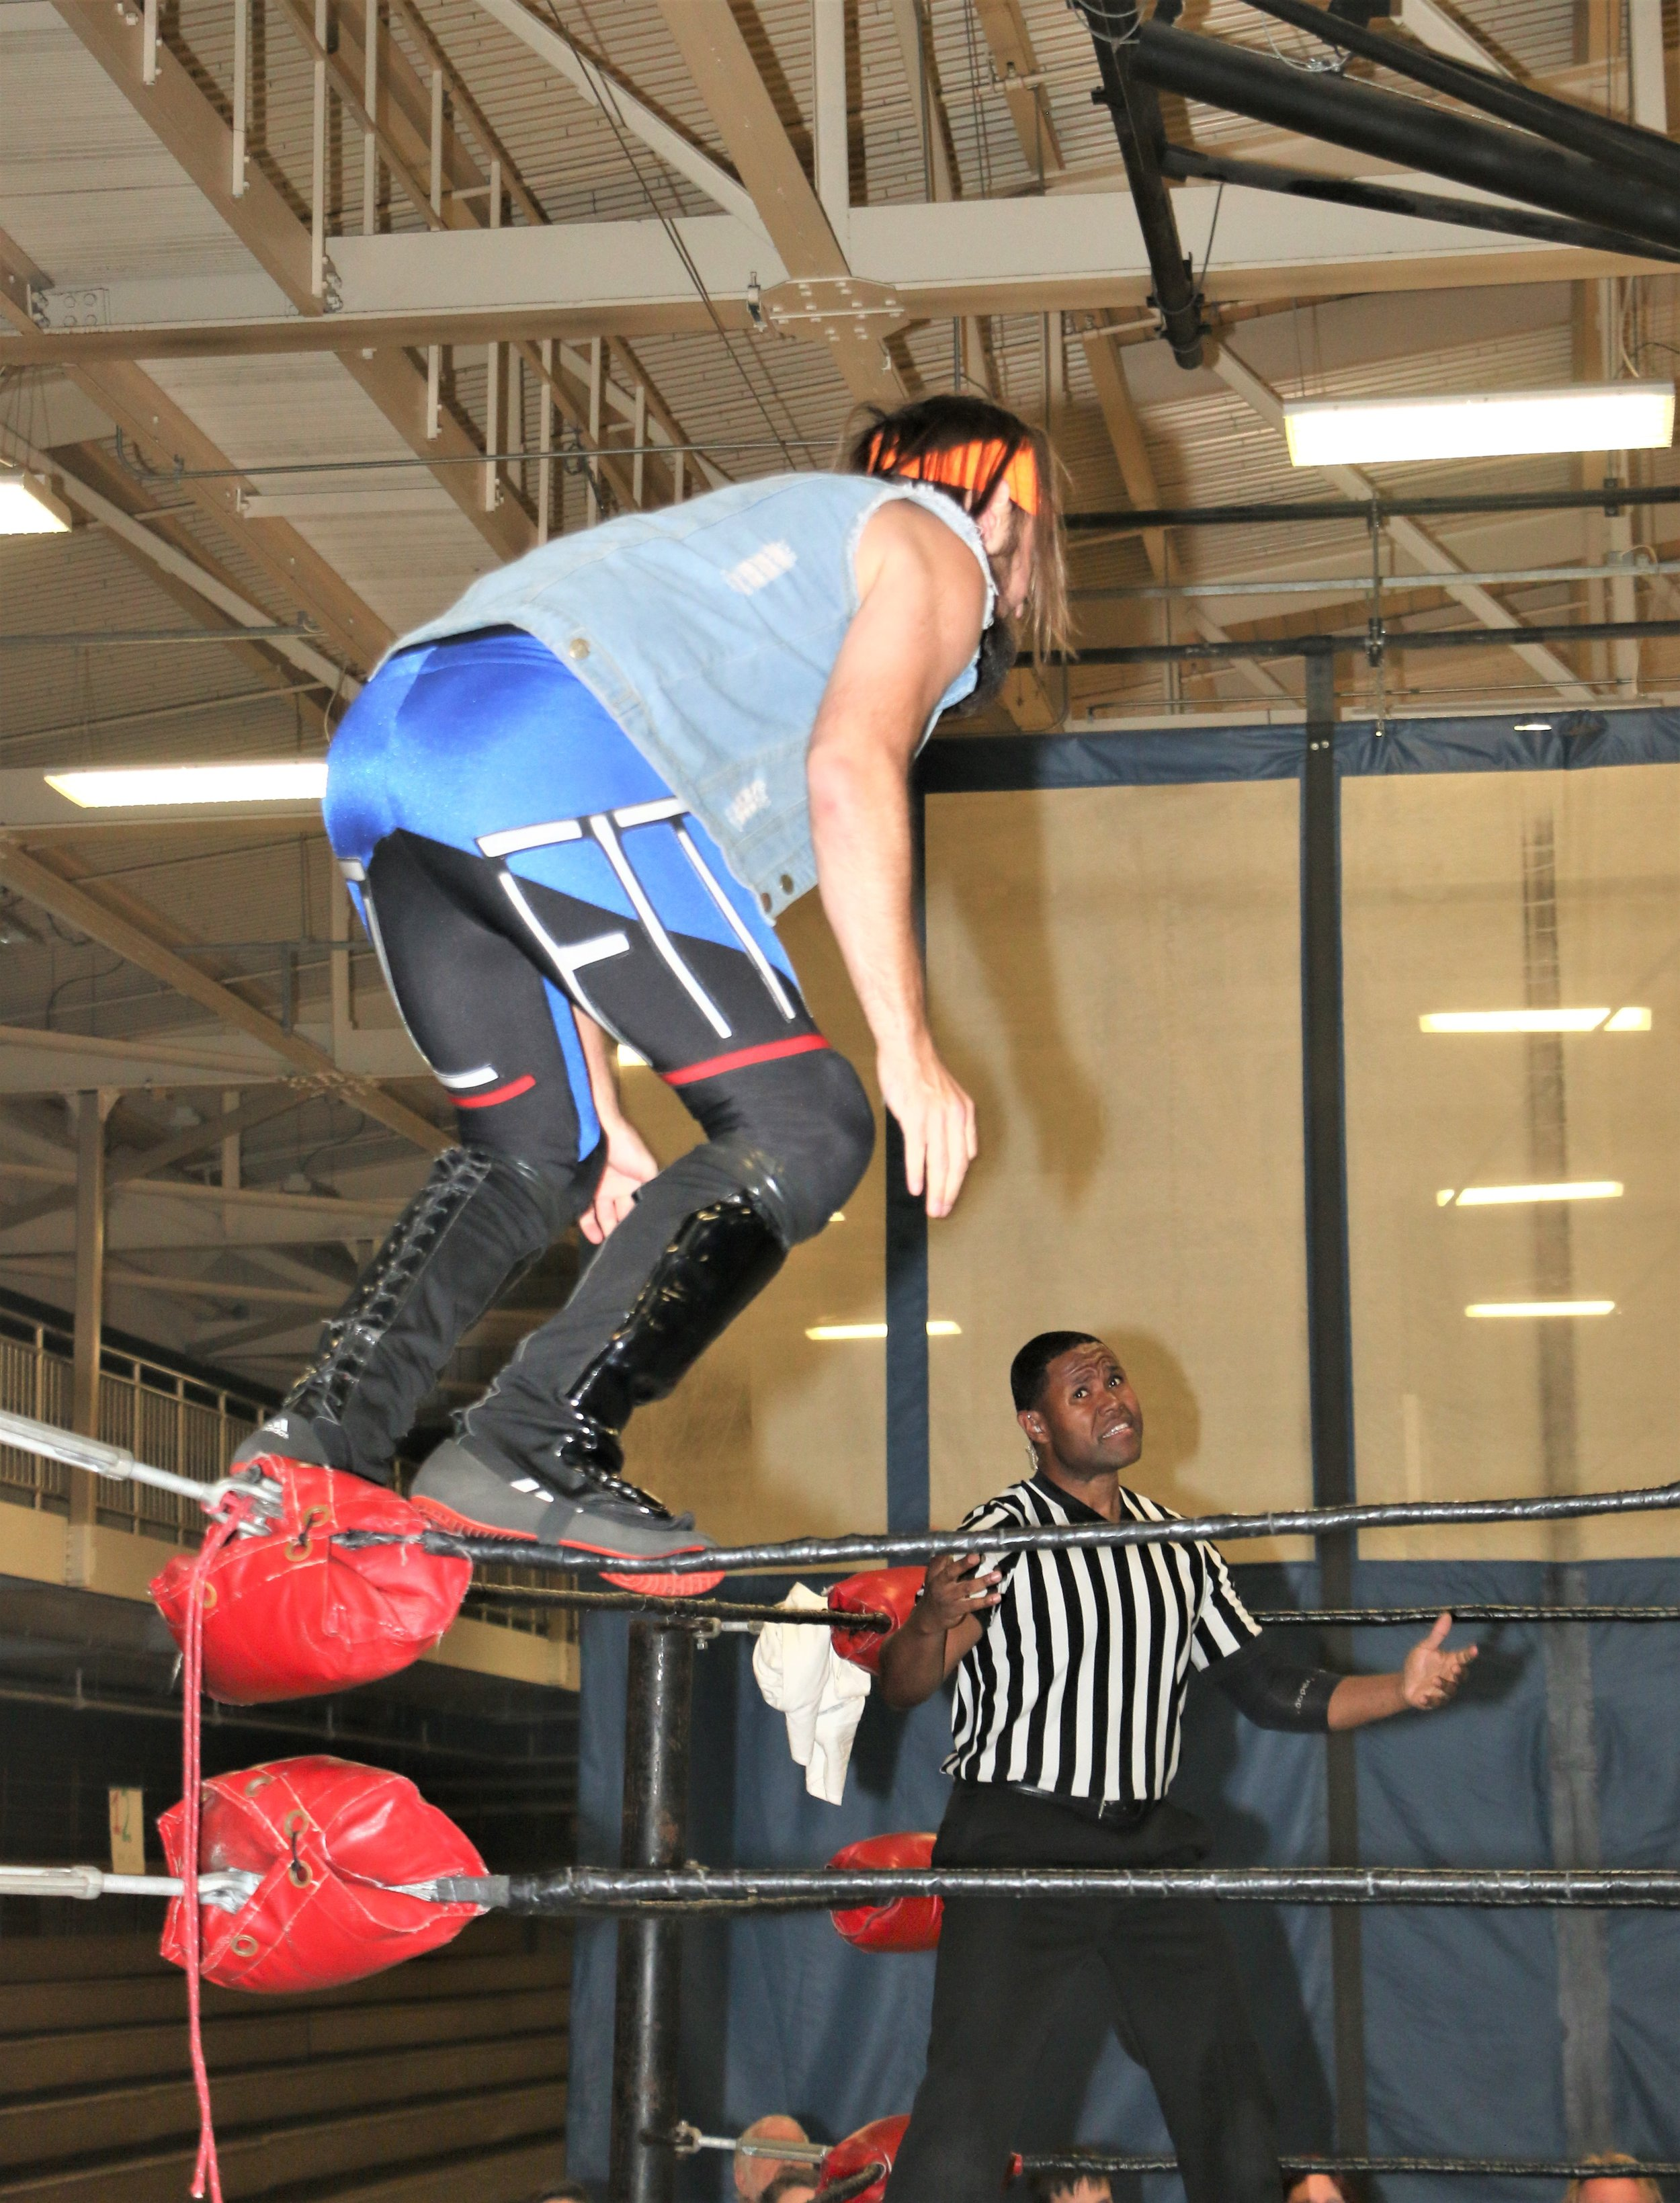 Randy Fitzsimmons looks to dive off the top rope.